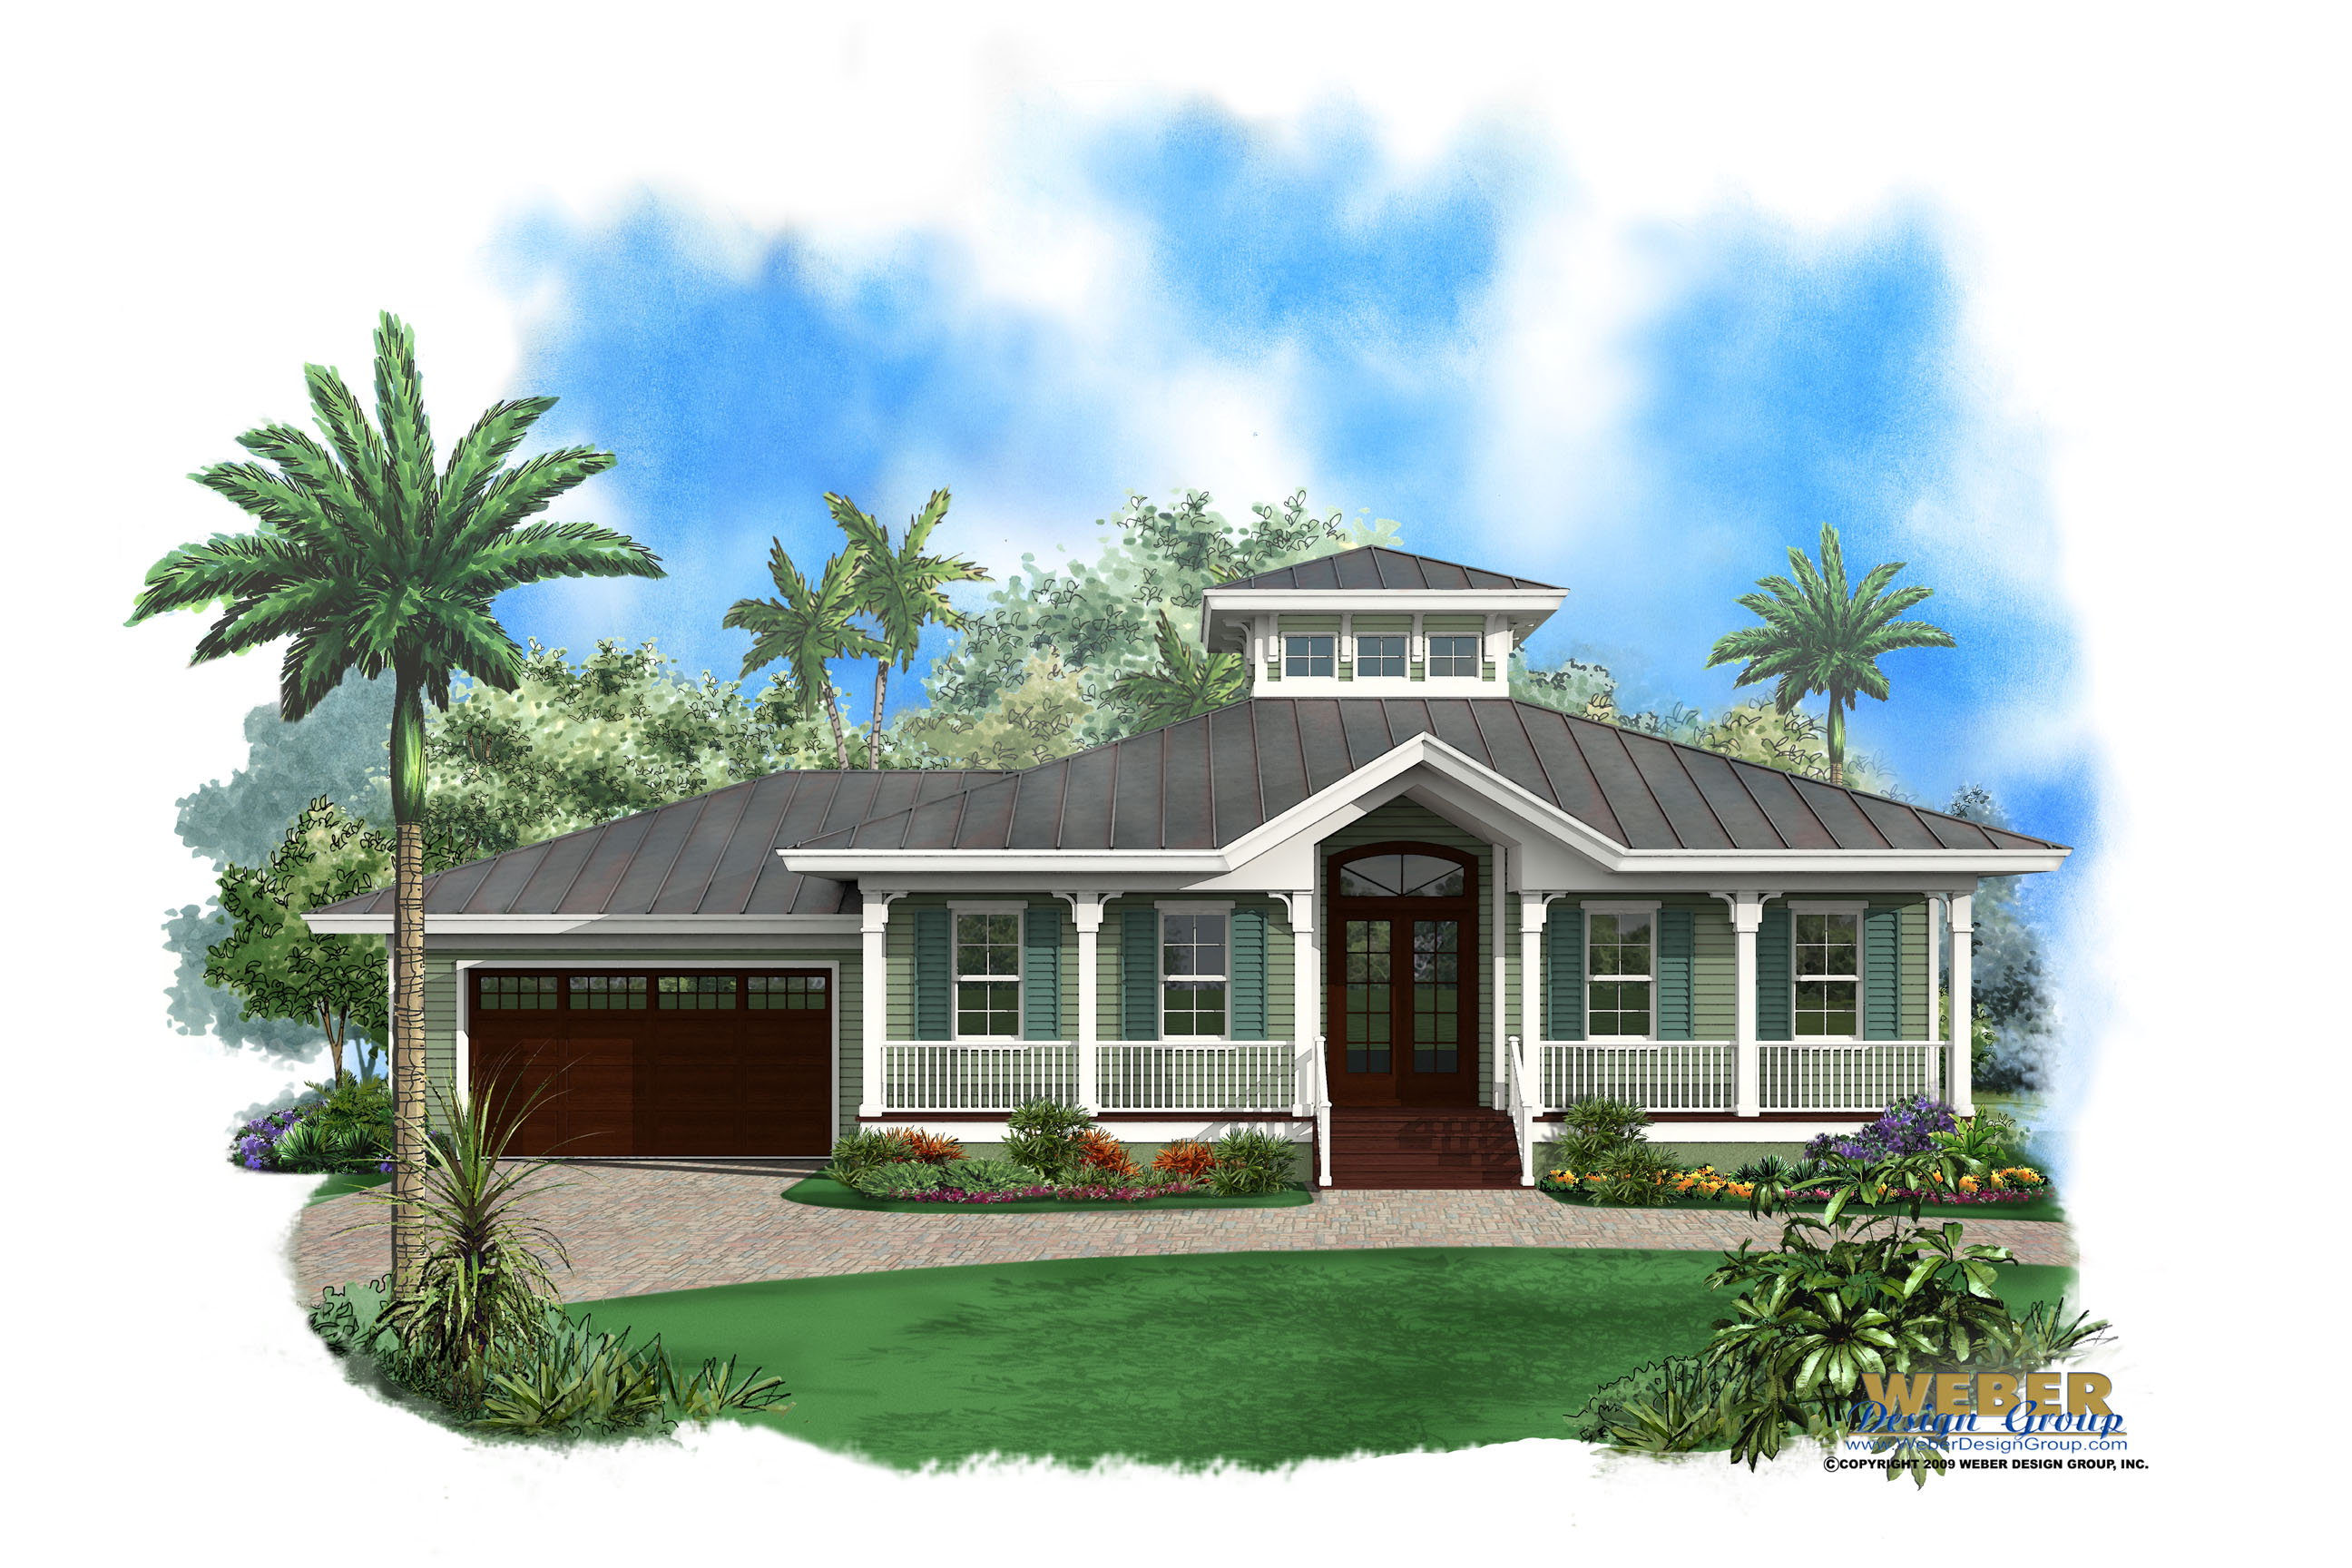 Coastal House Plans dewees breeze Ambergris Cay House Plan